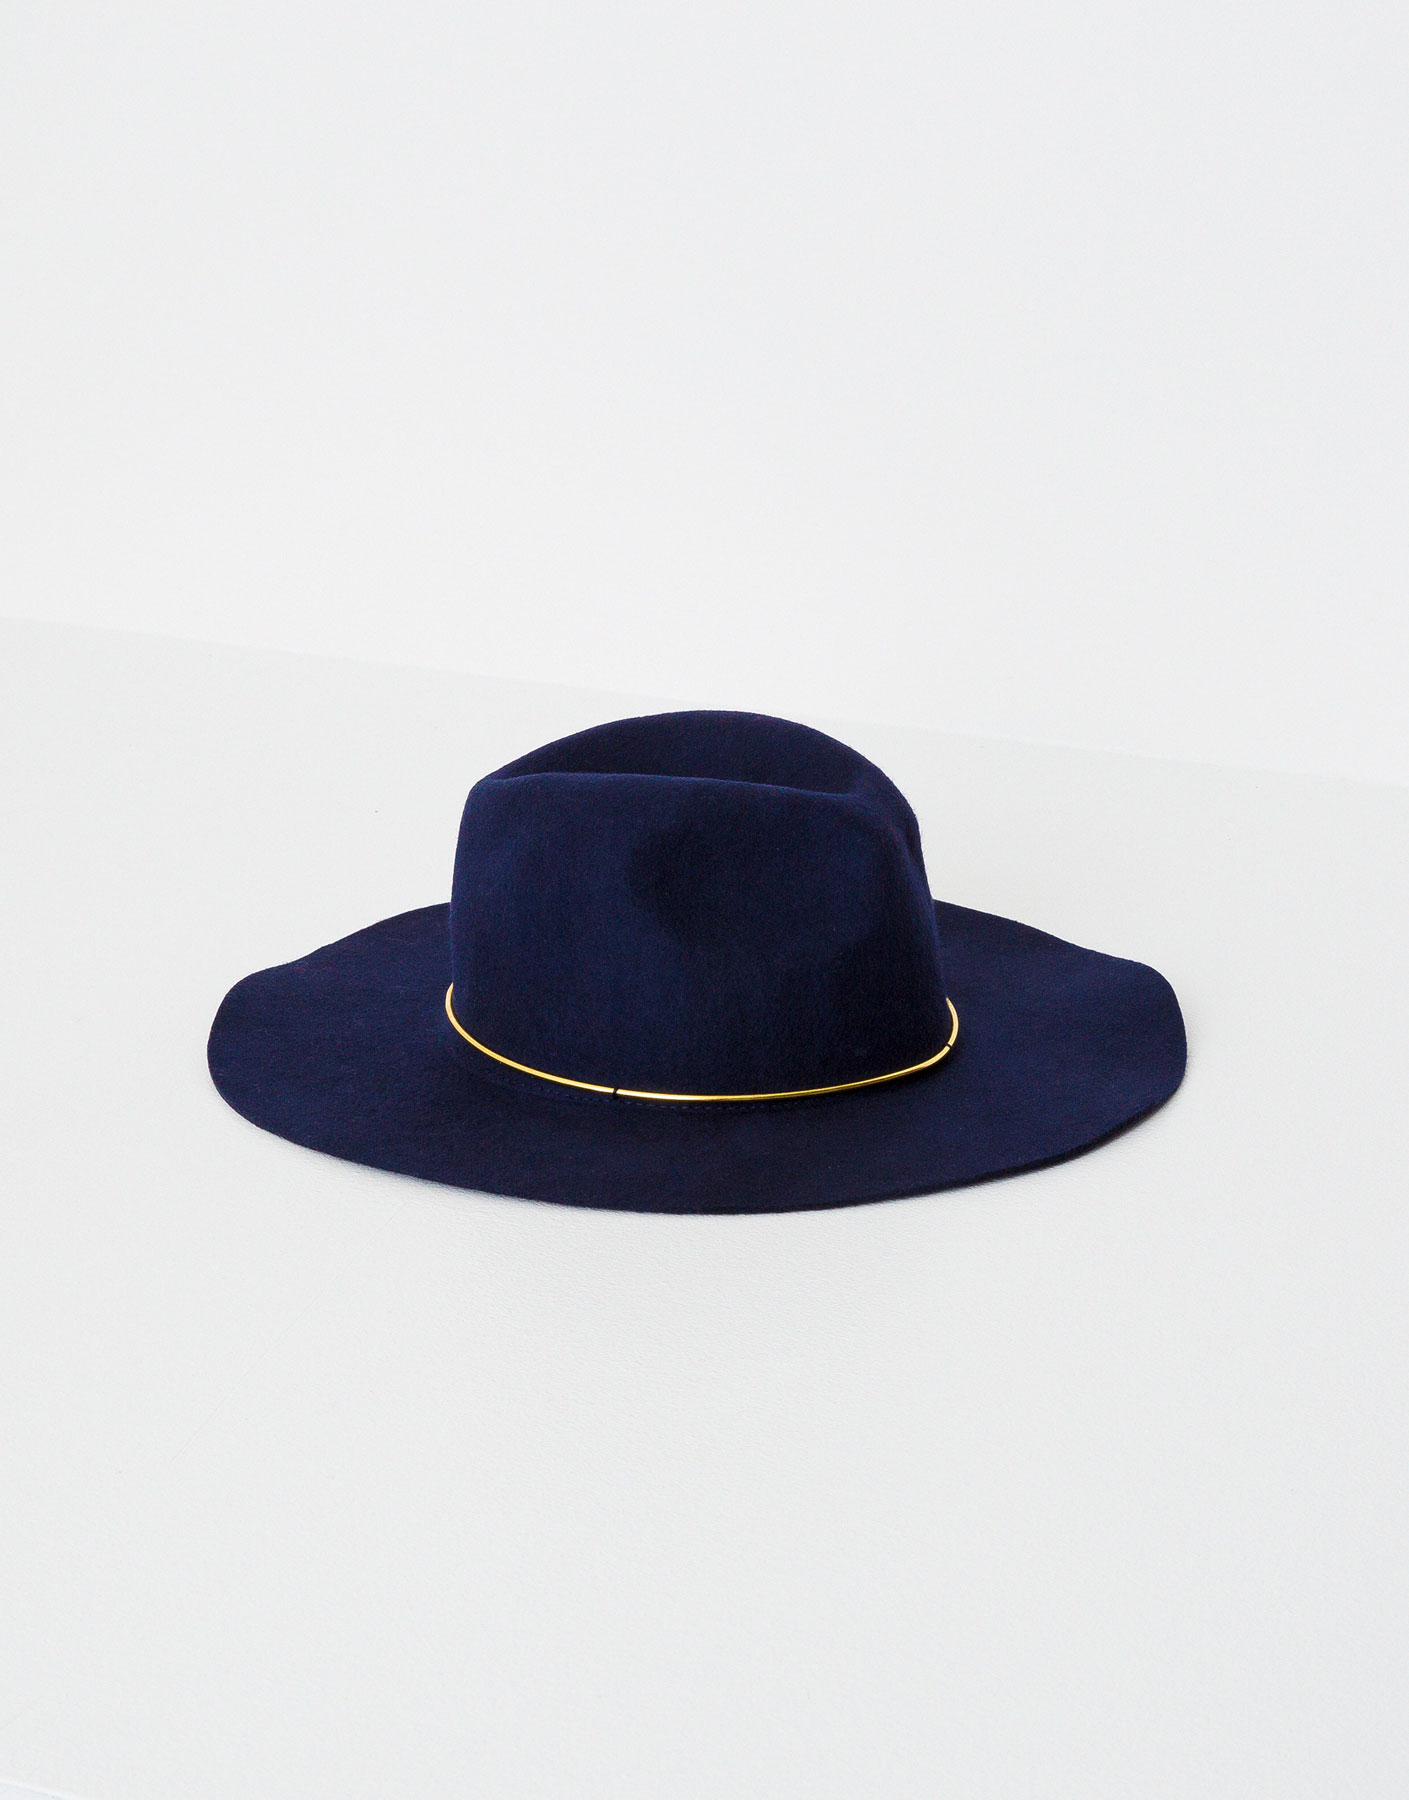 Hat with golden detail